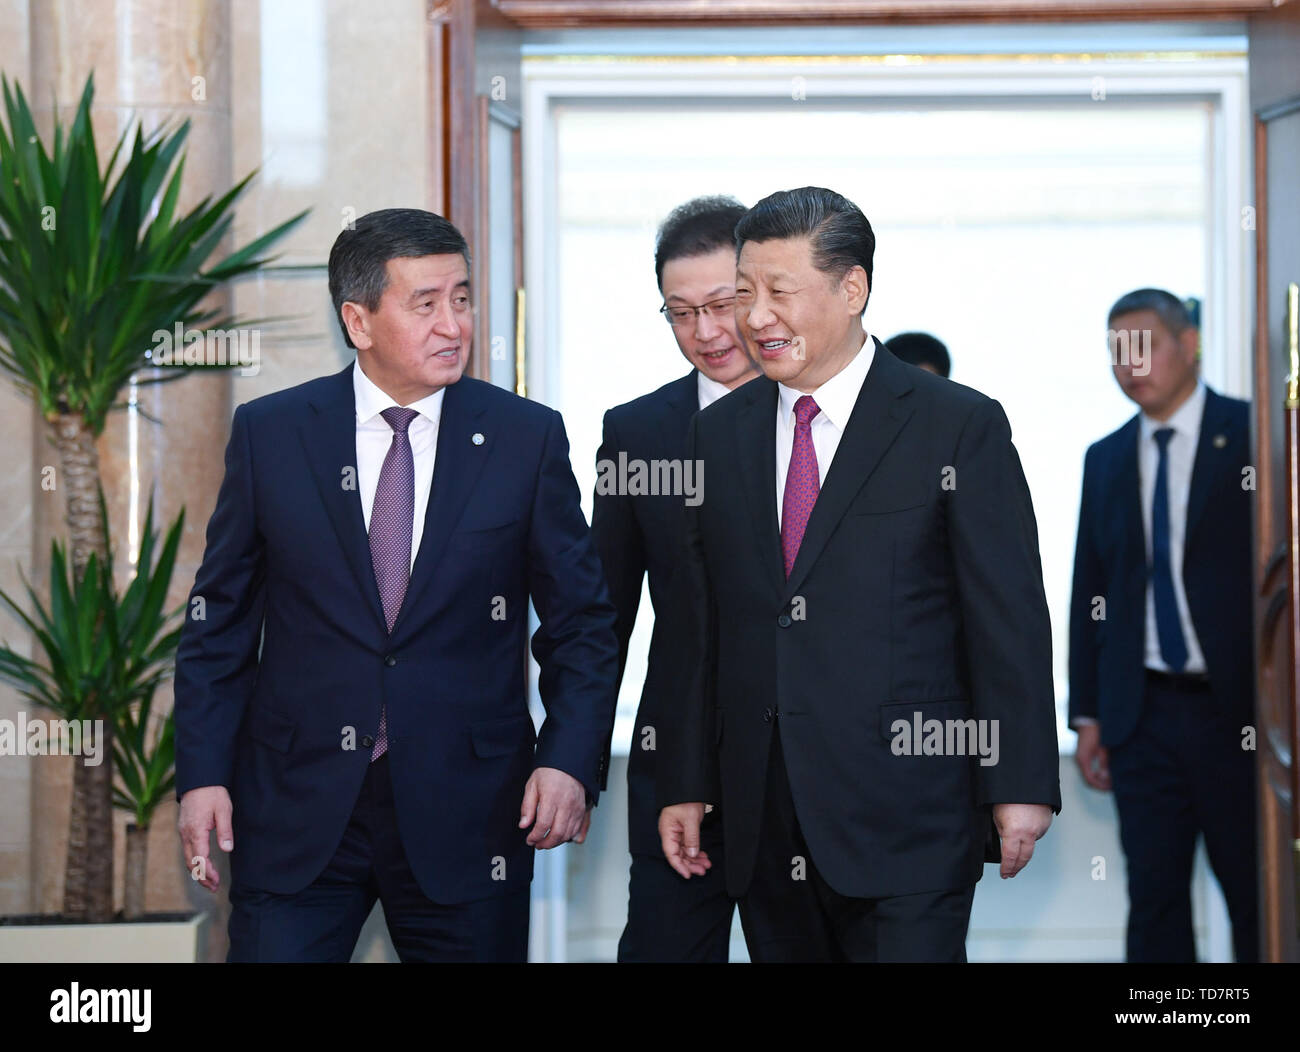 Bishkek, Kyrgyzstan. 13th June, 2019. Chinese President Xi Jinping and his Kyrgyz counterpart Sooronbay Jeenbekov arrive for their talks in Bishkek, Kyrgyzstan, June 13, 2019. Xi and Jeenbekov held talks here Thursday, agreeing to take their countries' comprehensive strategic partnership to new heights. Credit: Yin Bogu/Xinhua/Alamy Live News - Stock Image